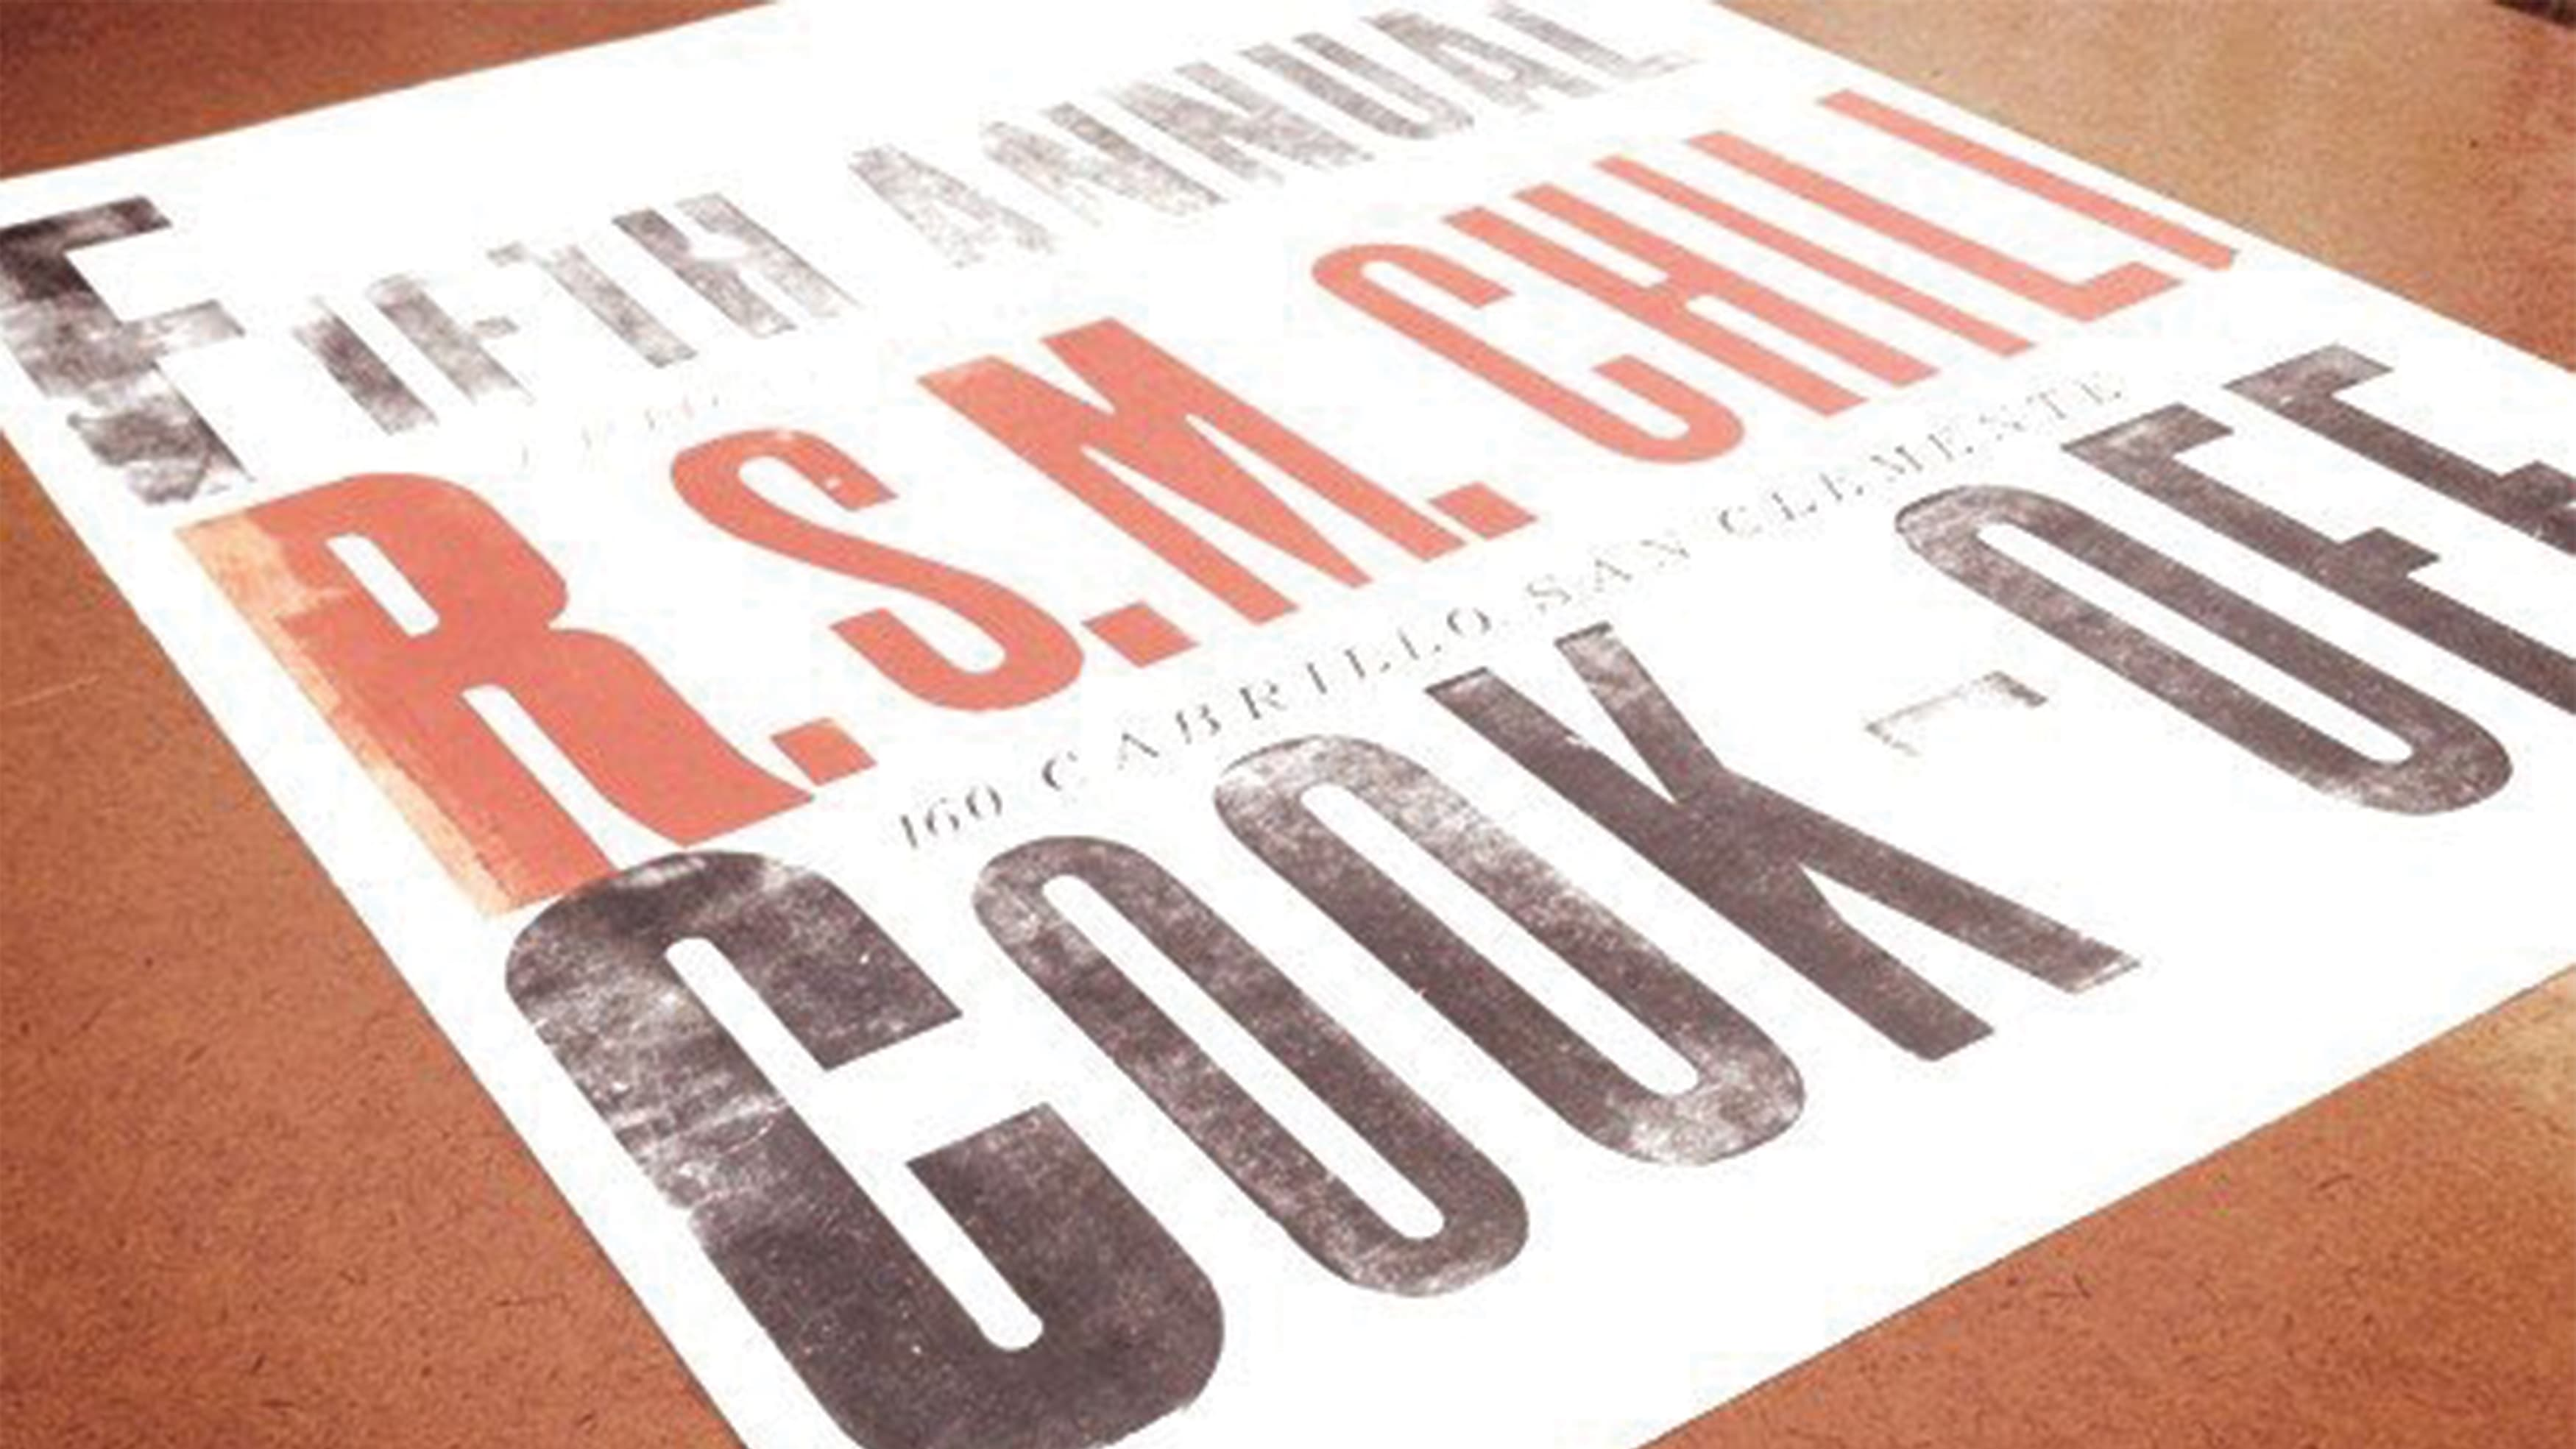 RSM Design's poster for the 5th Annual Chili Cook Off